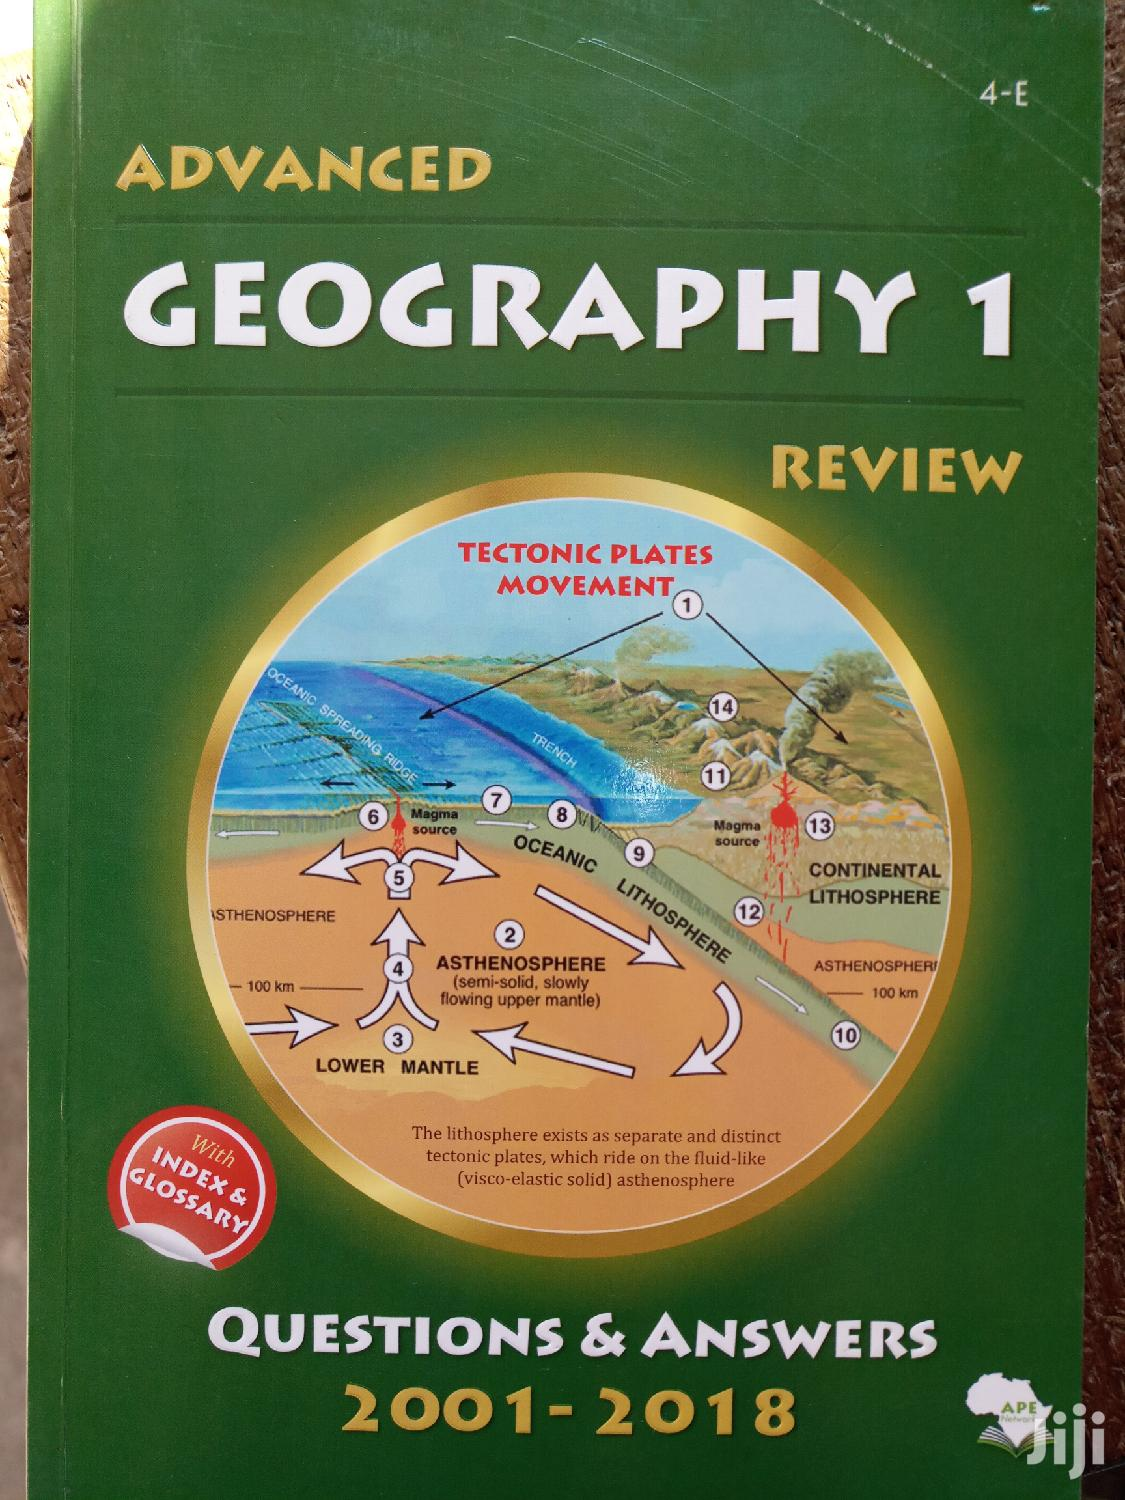 Advanced Level Geography Review Ya Necta